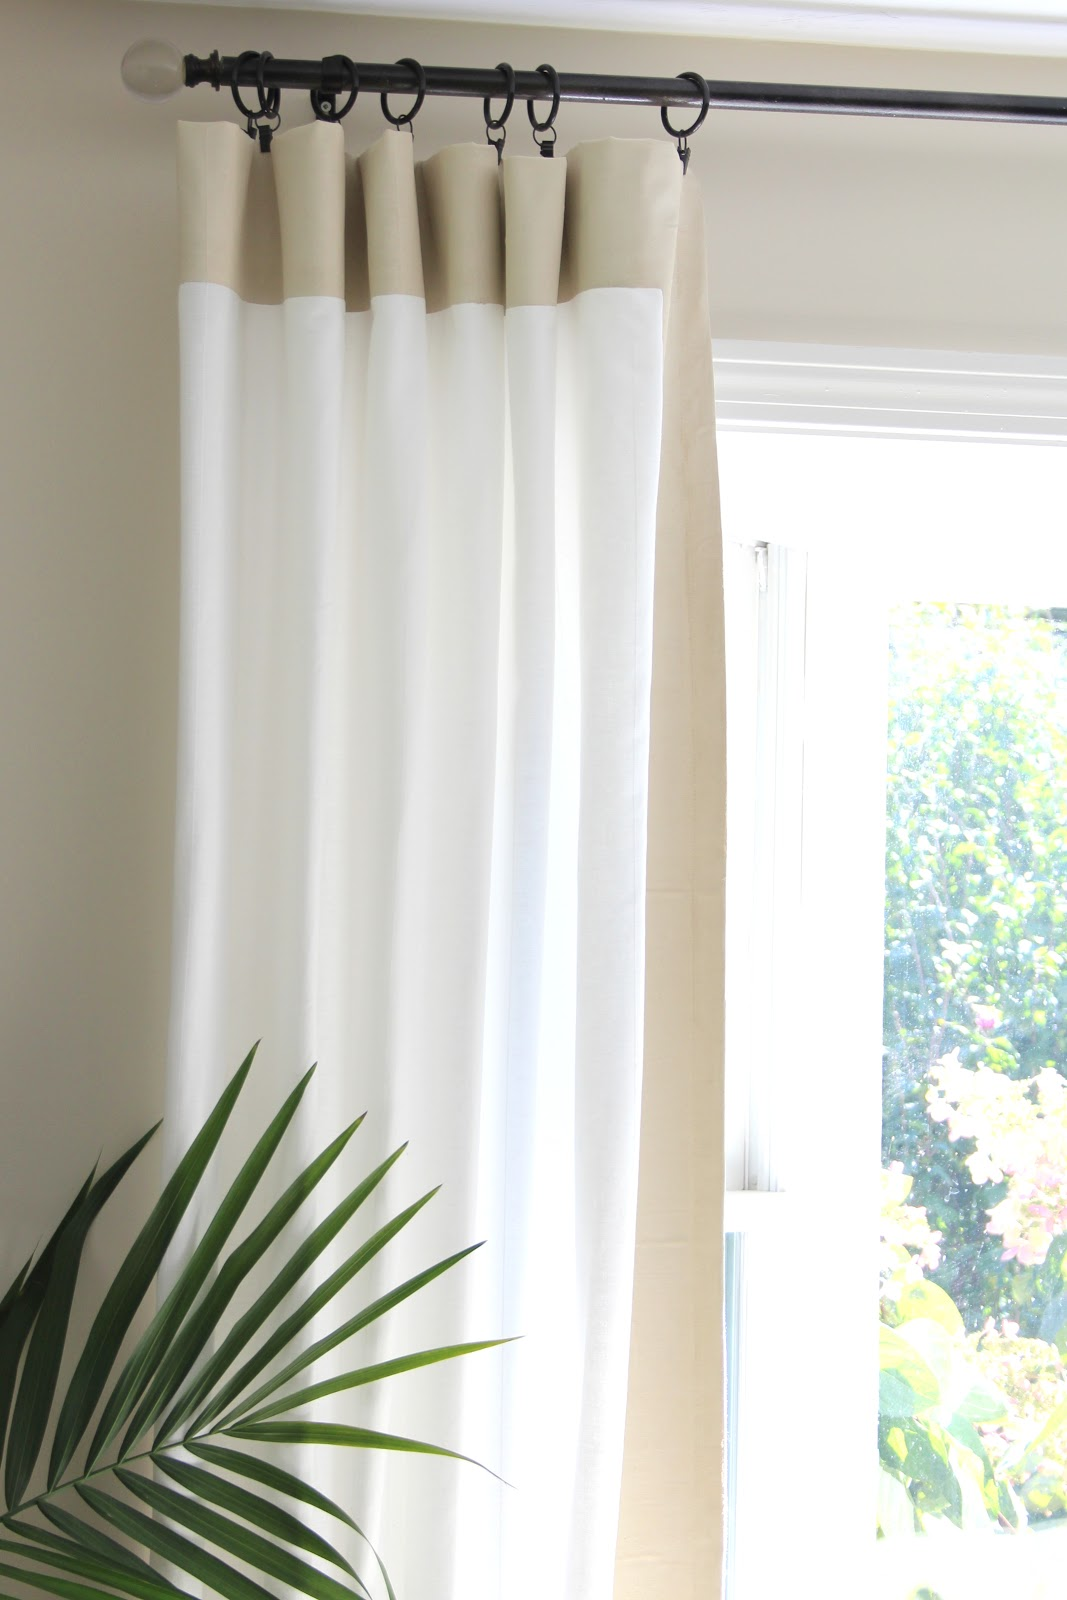 Diy Curtain Rods Shine Your Light